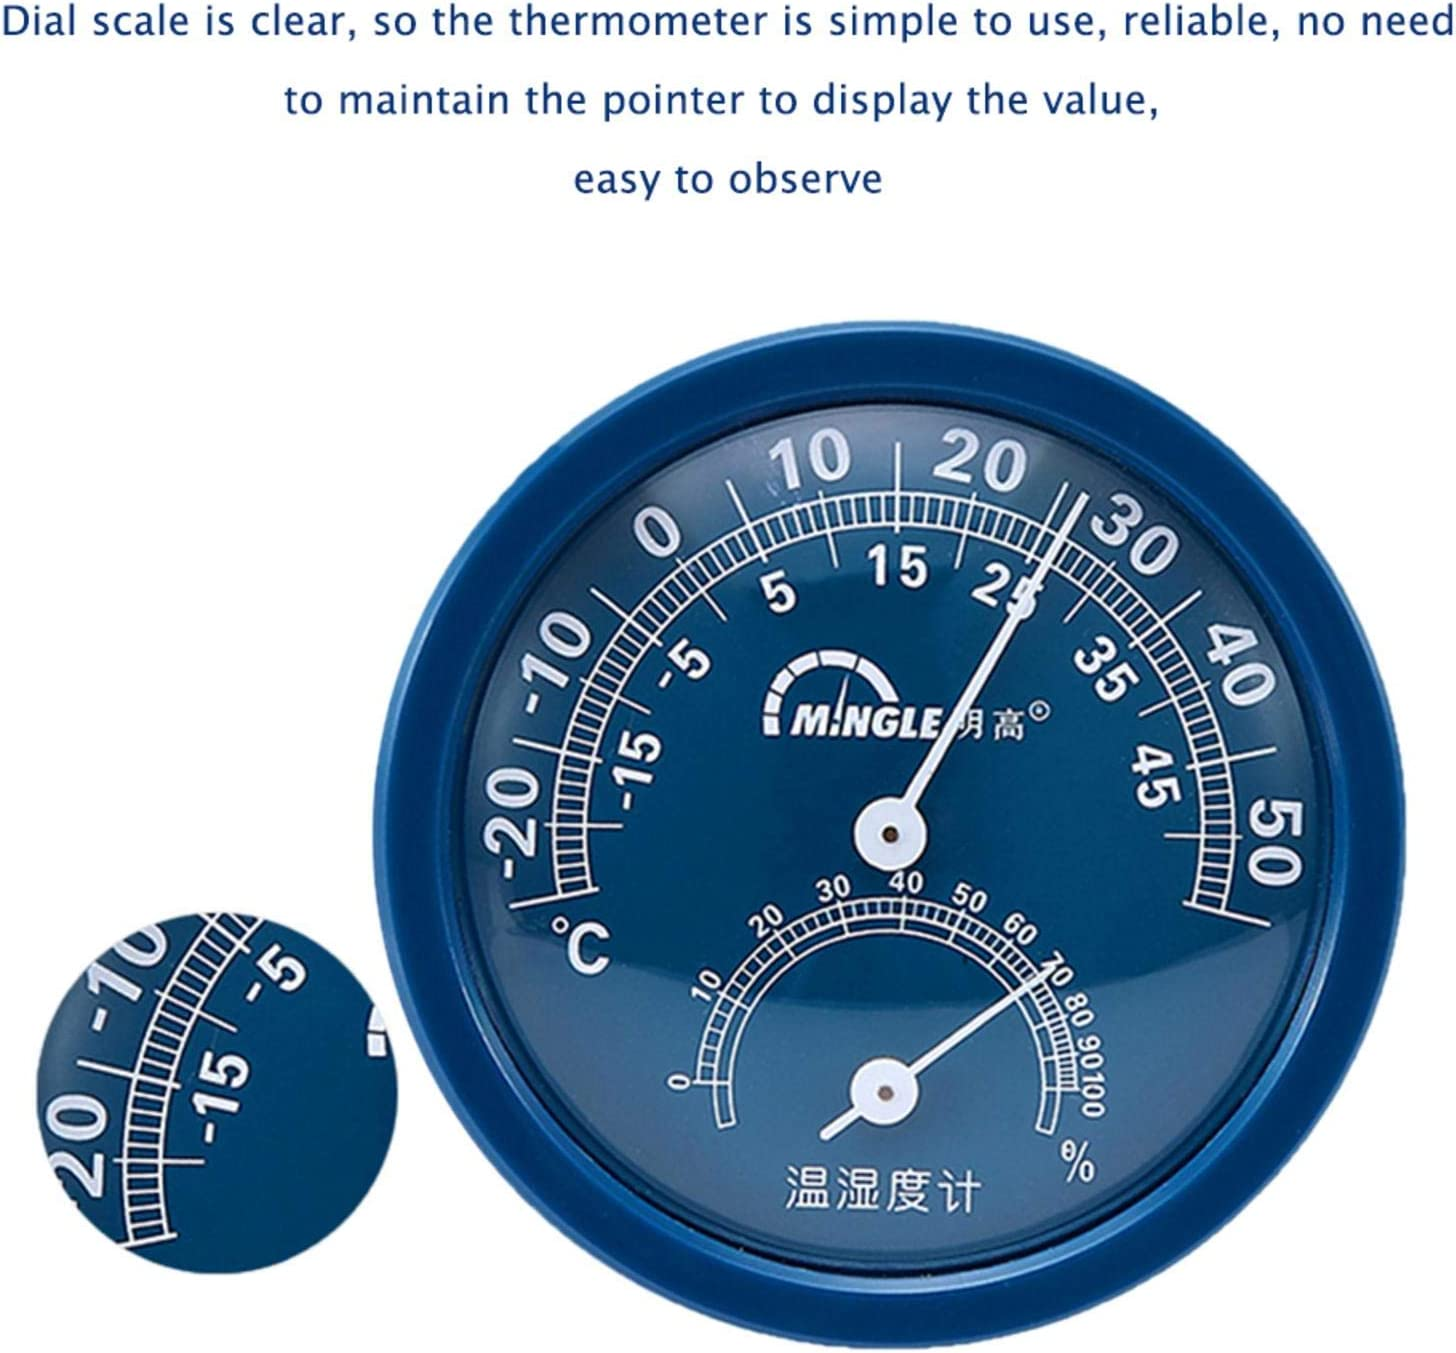 2.95 Indoor Outdoor Weather Thermometer//Hygrometer for Patio Wall Decorative advancethy Surface or Wall Mounted Temperature Monitor